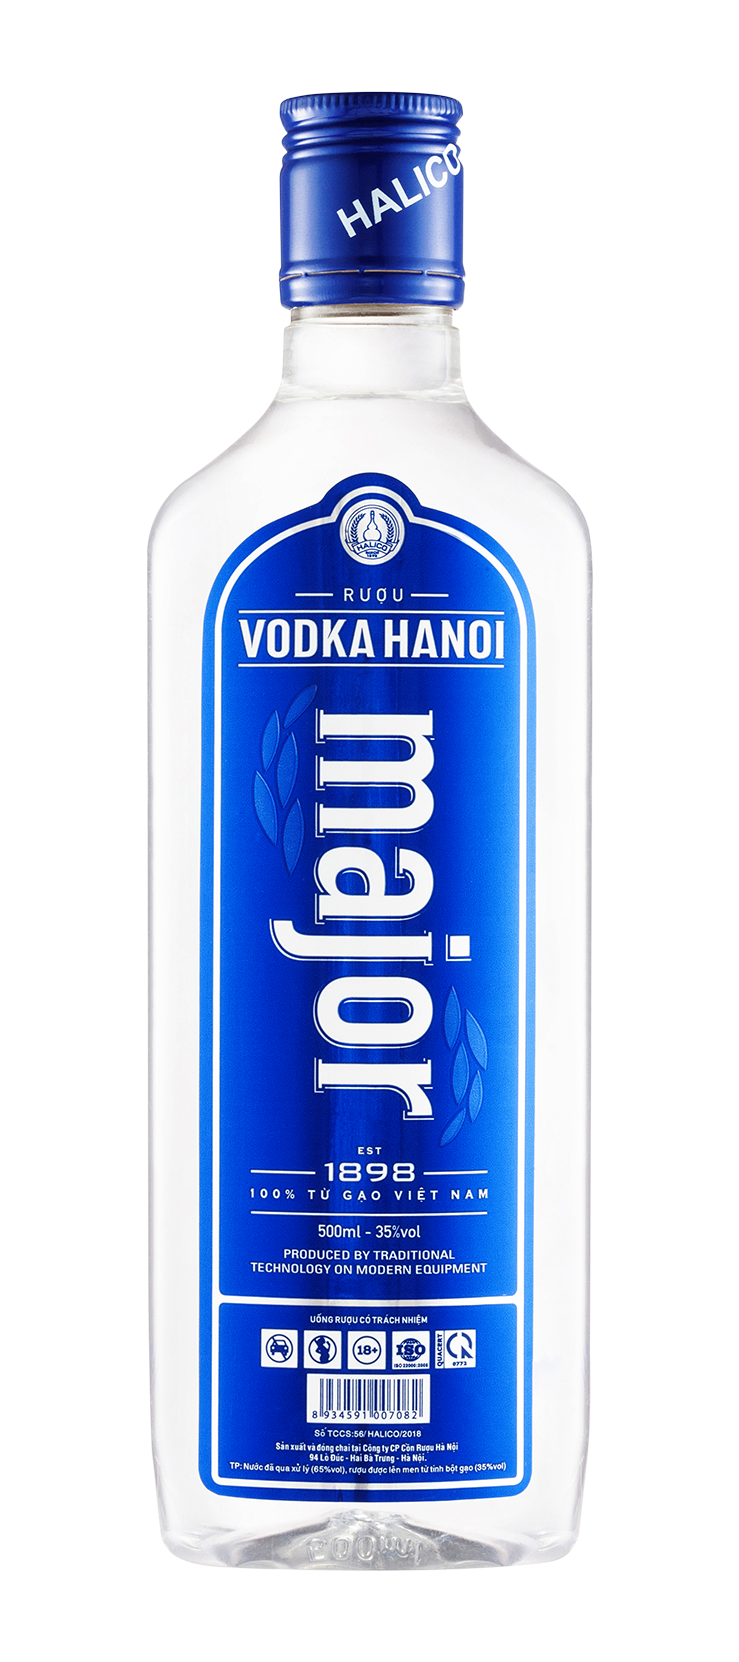 VODKA HÀ NỘI MAJOR